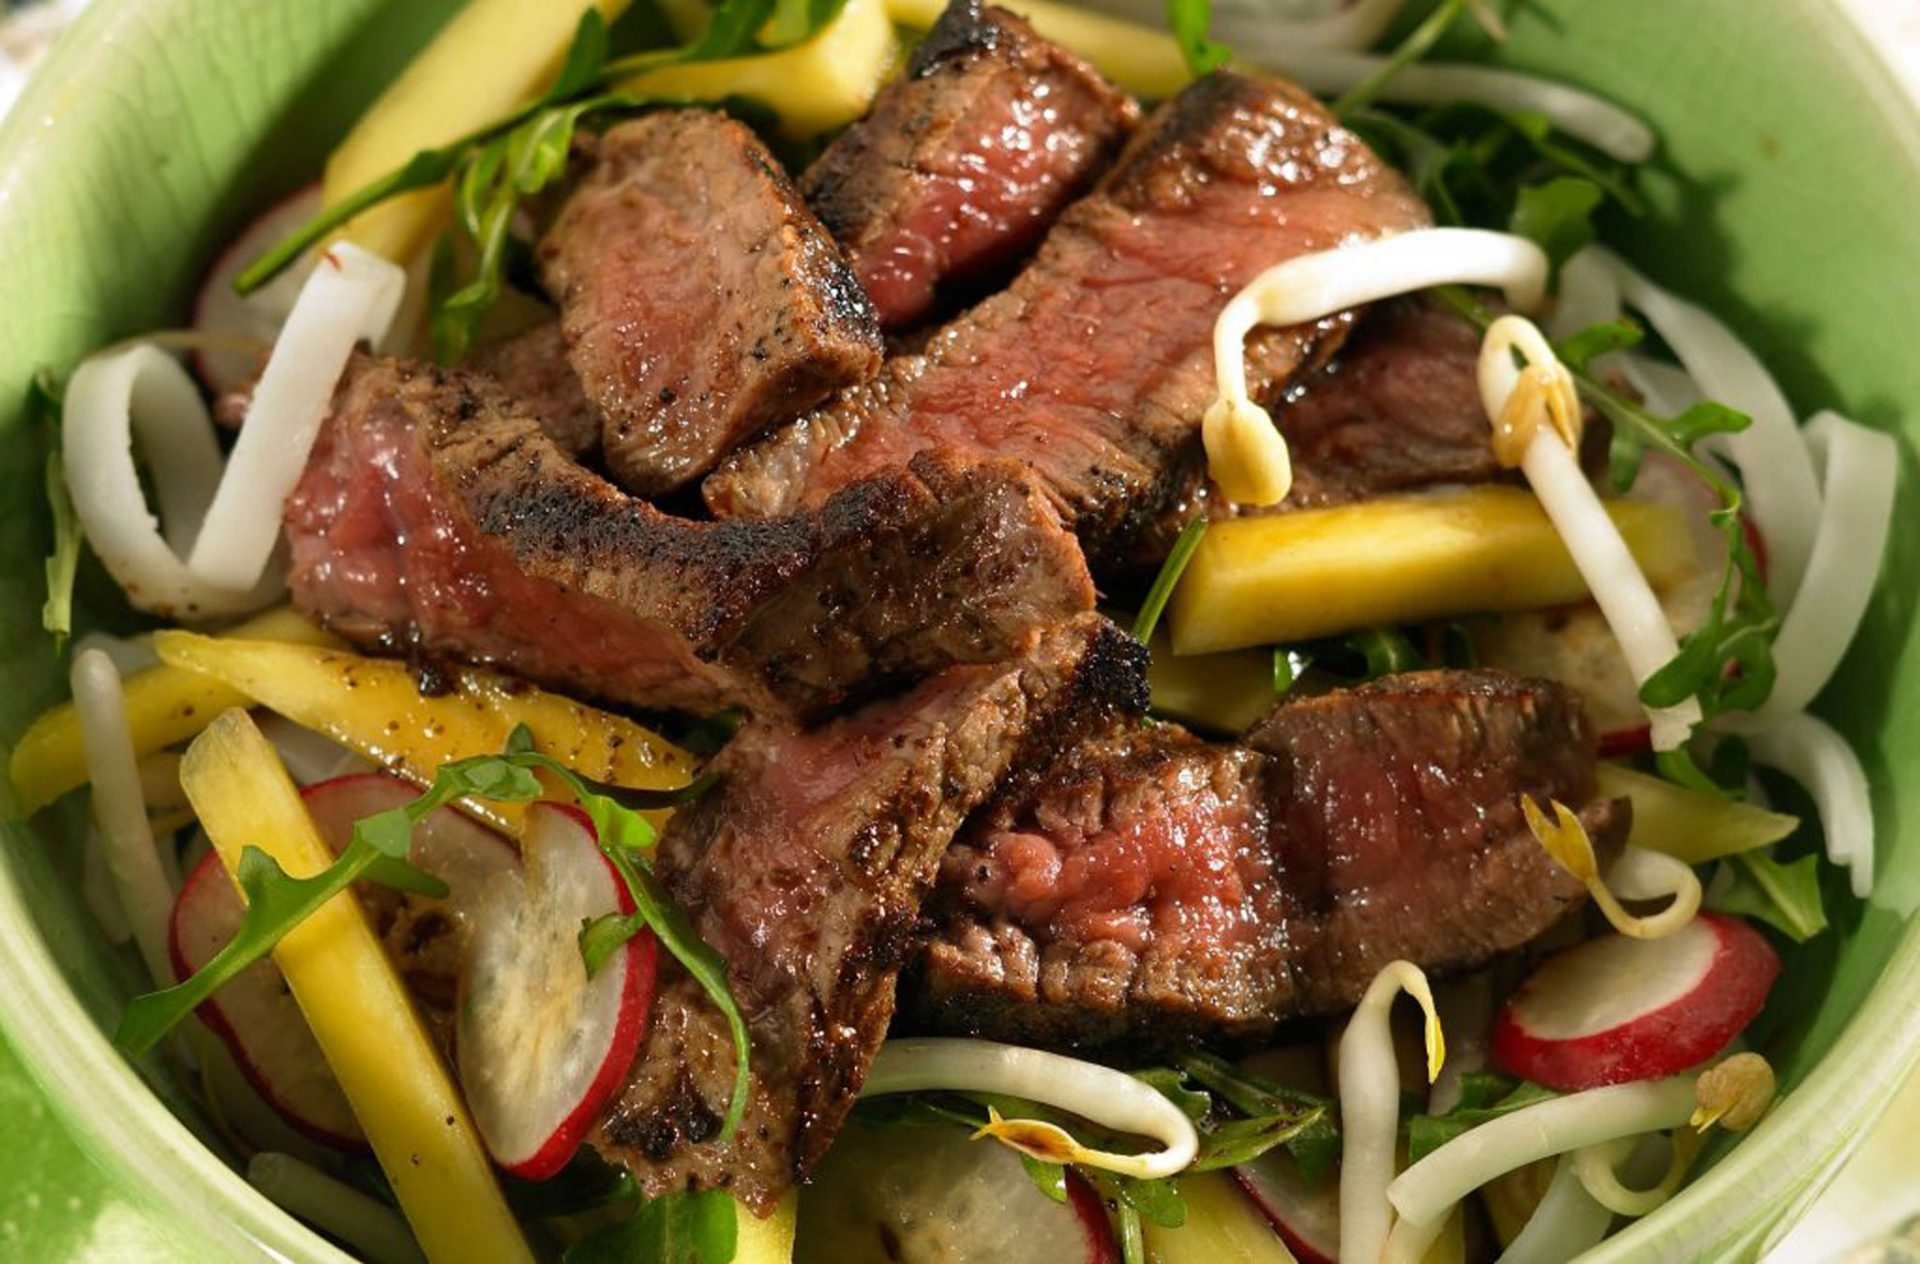 Slimming World recipe: Spiced Thai beef salad with Wild rice